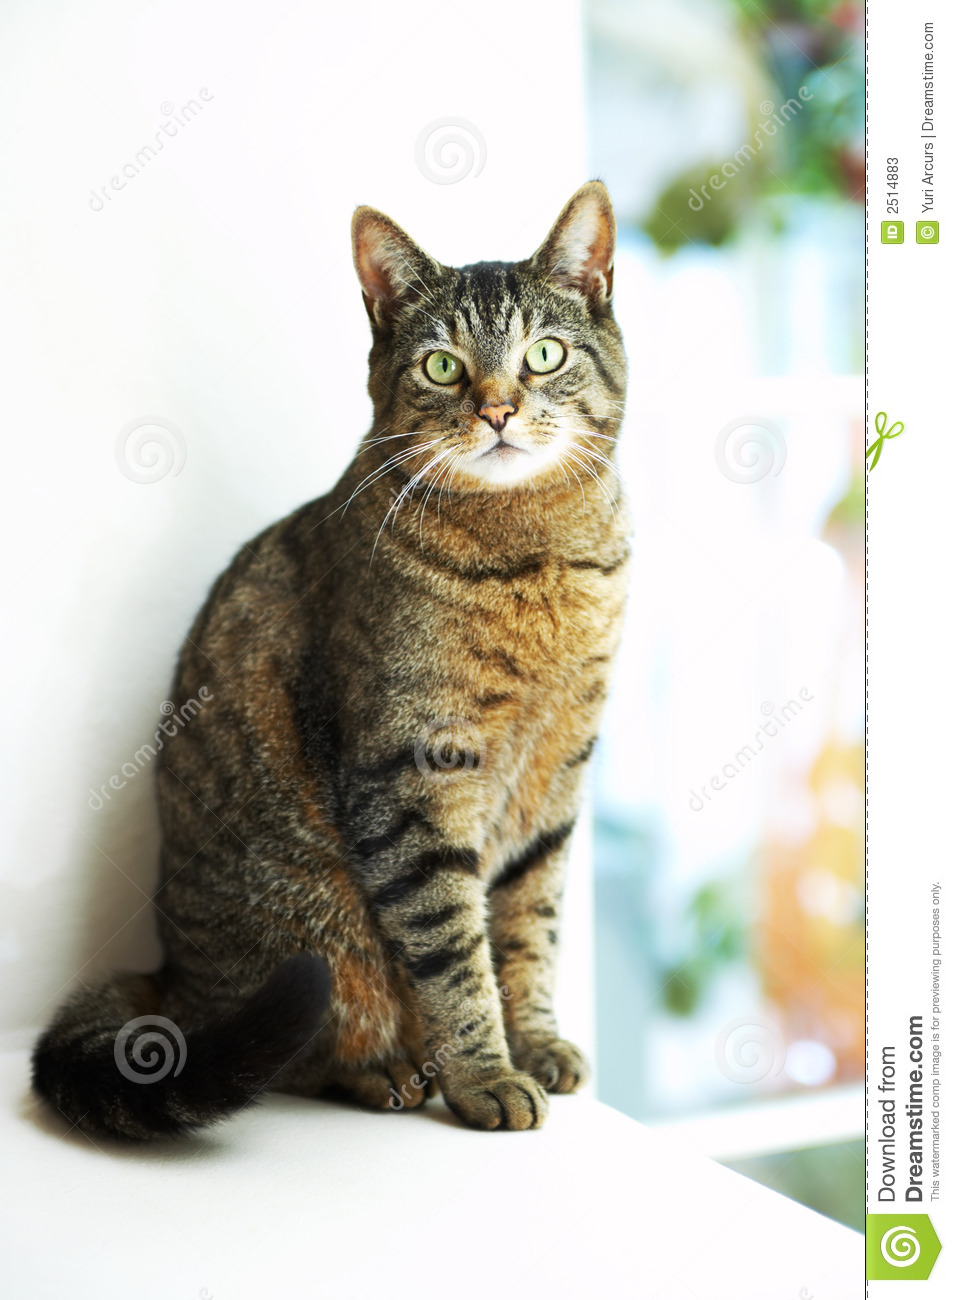 Stock Photos House Cat By Window Image 2514883